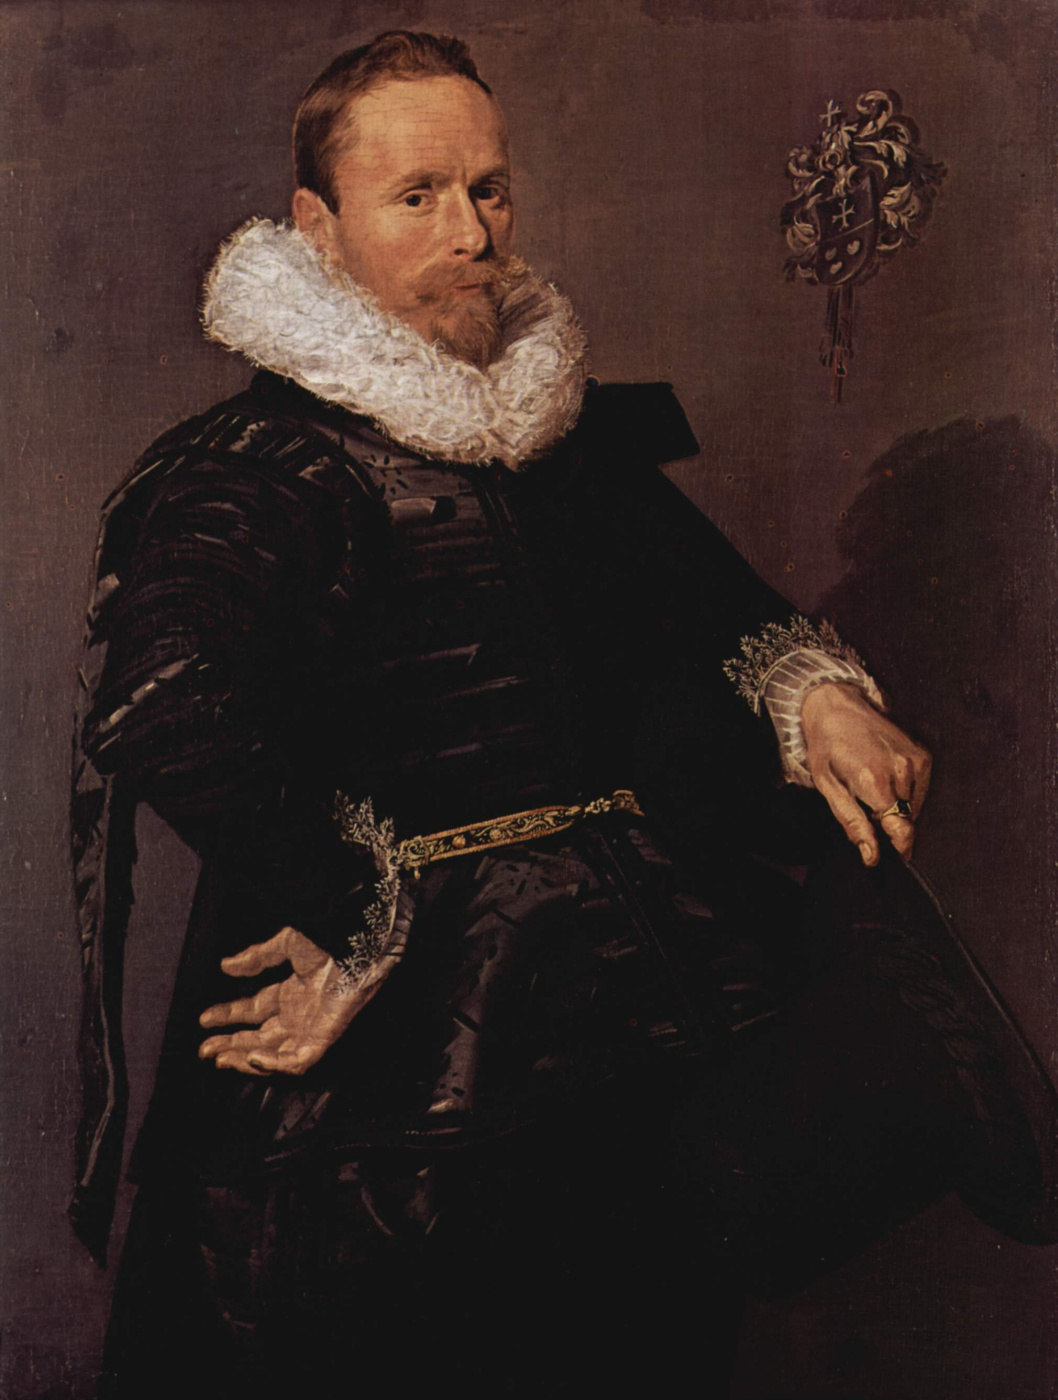 Frans Hals. Portrait of a man with a hat in his left hand